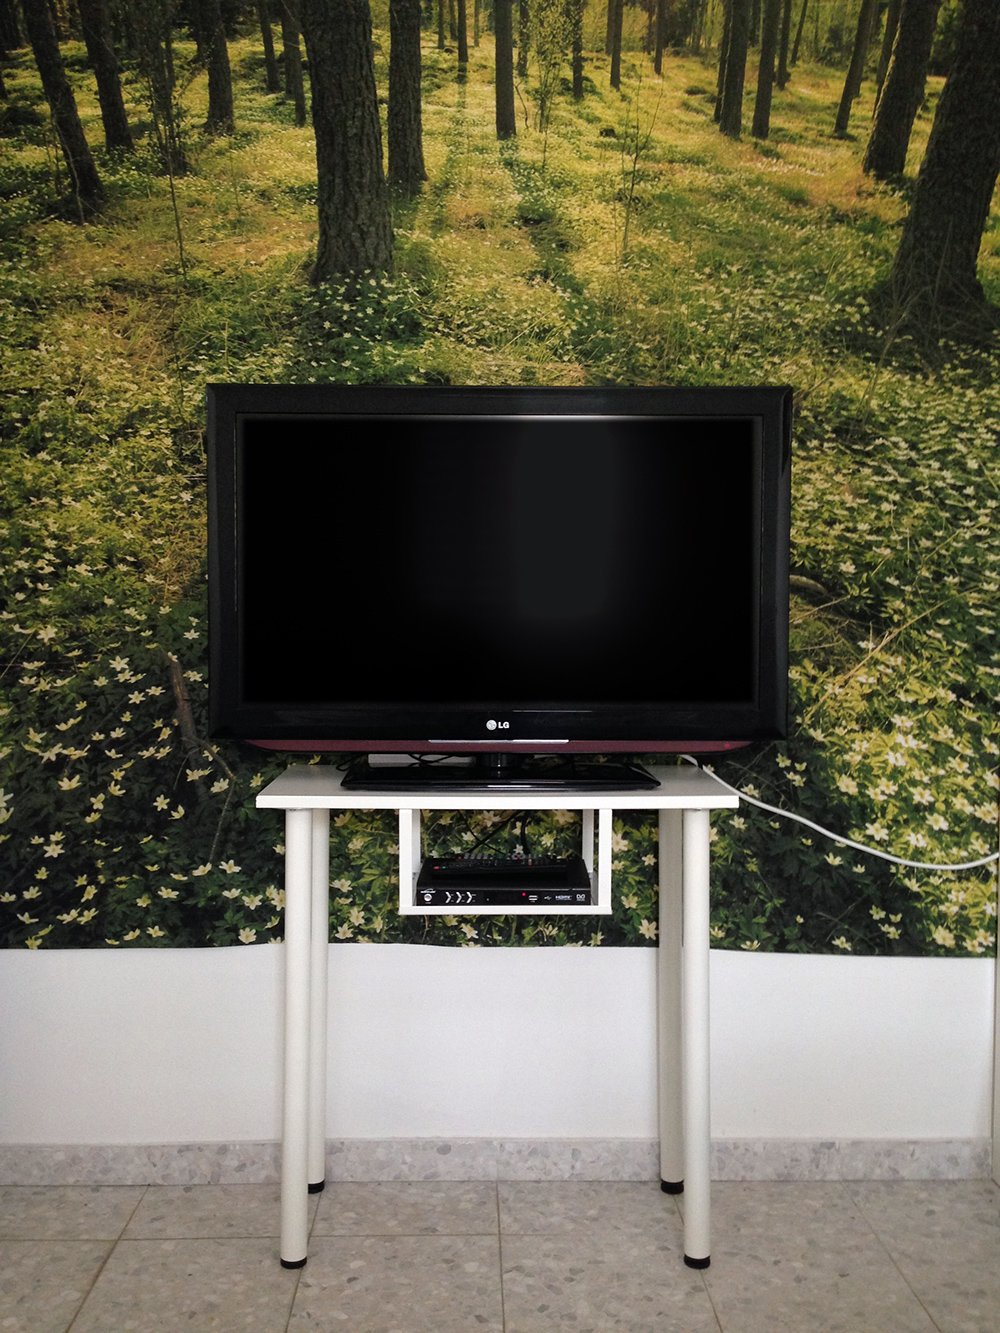 Tall TV Stand - IKEA Hackers